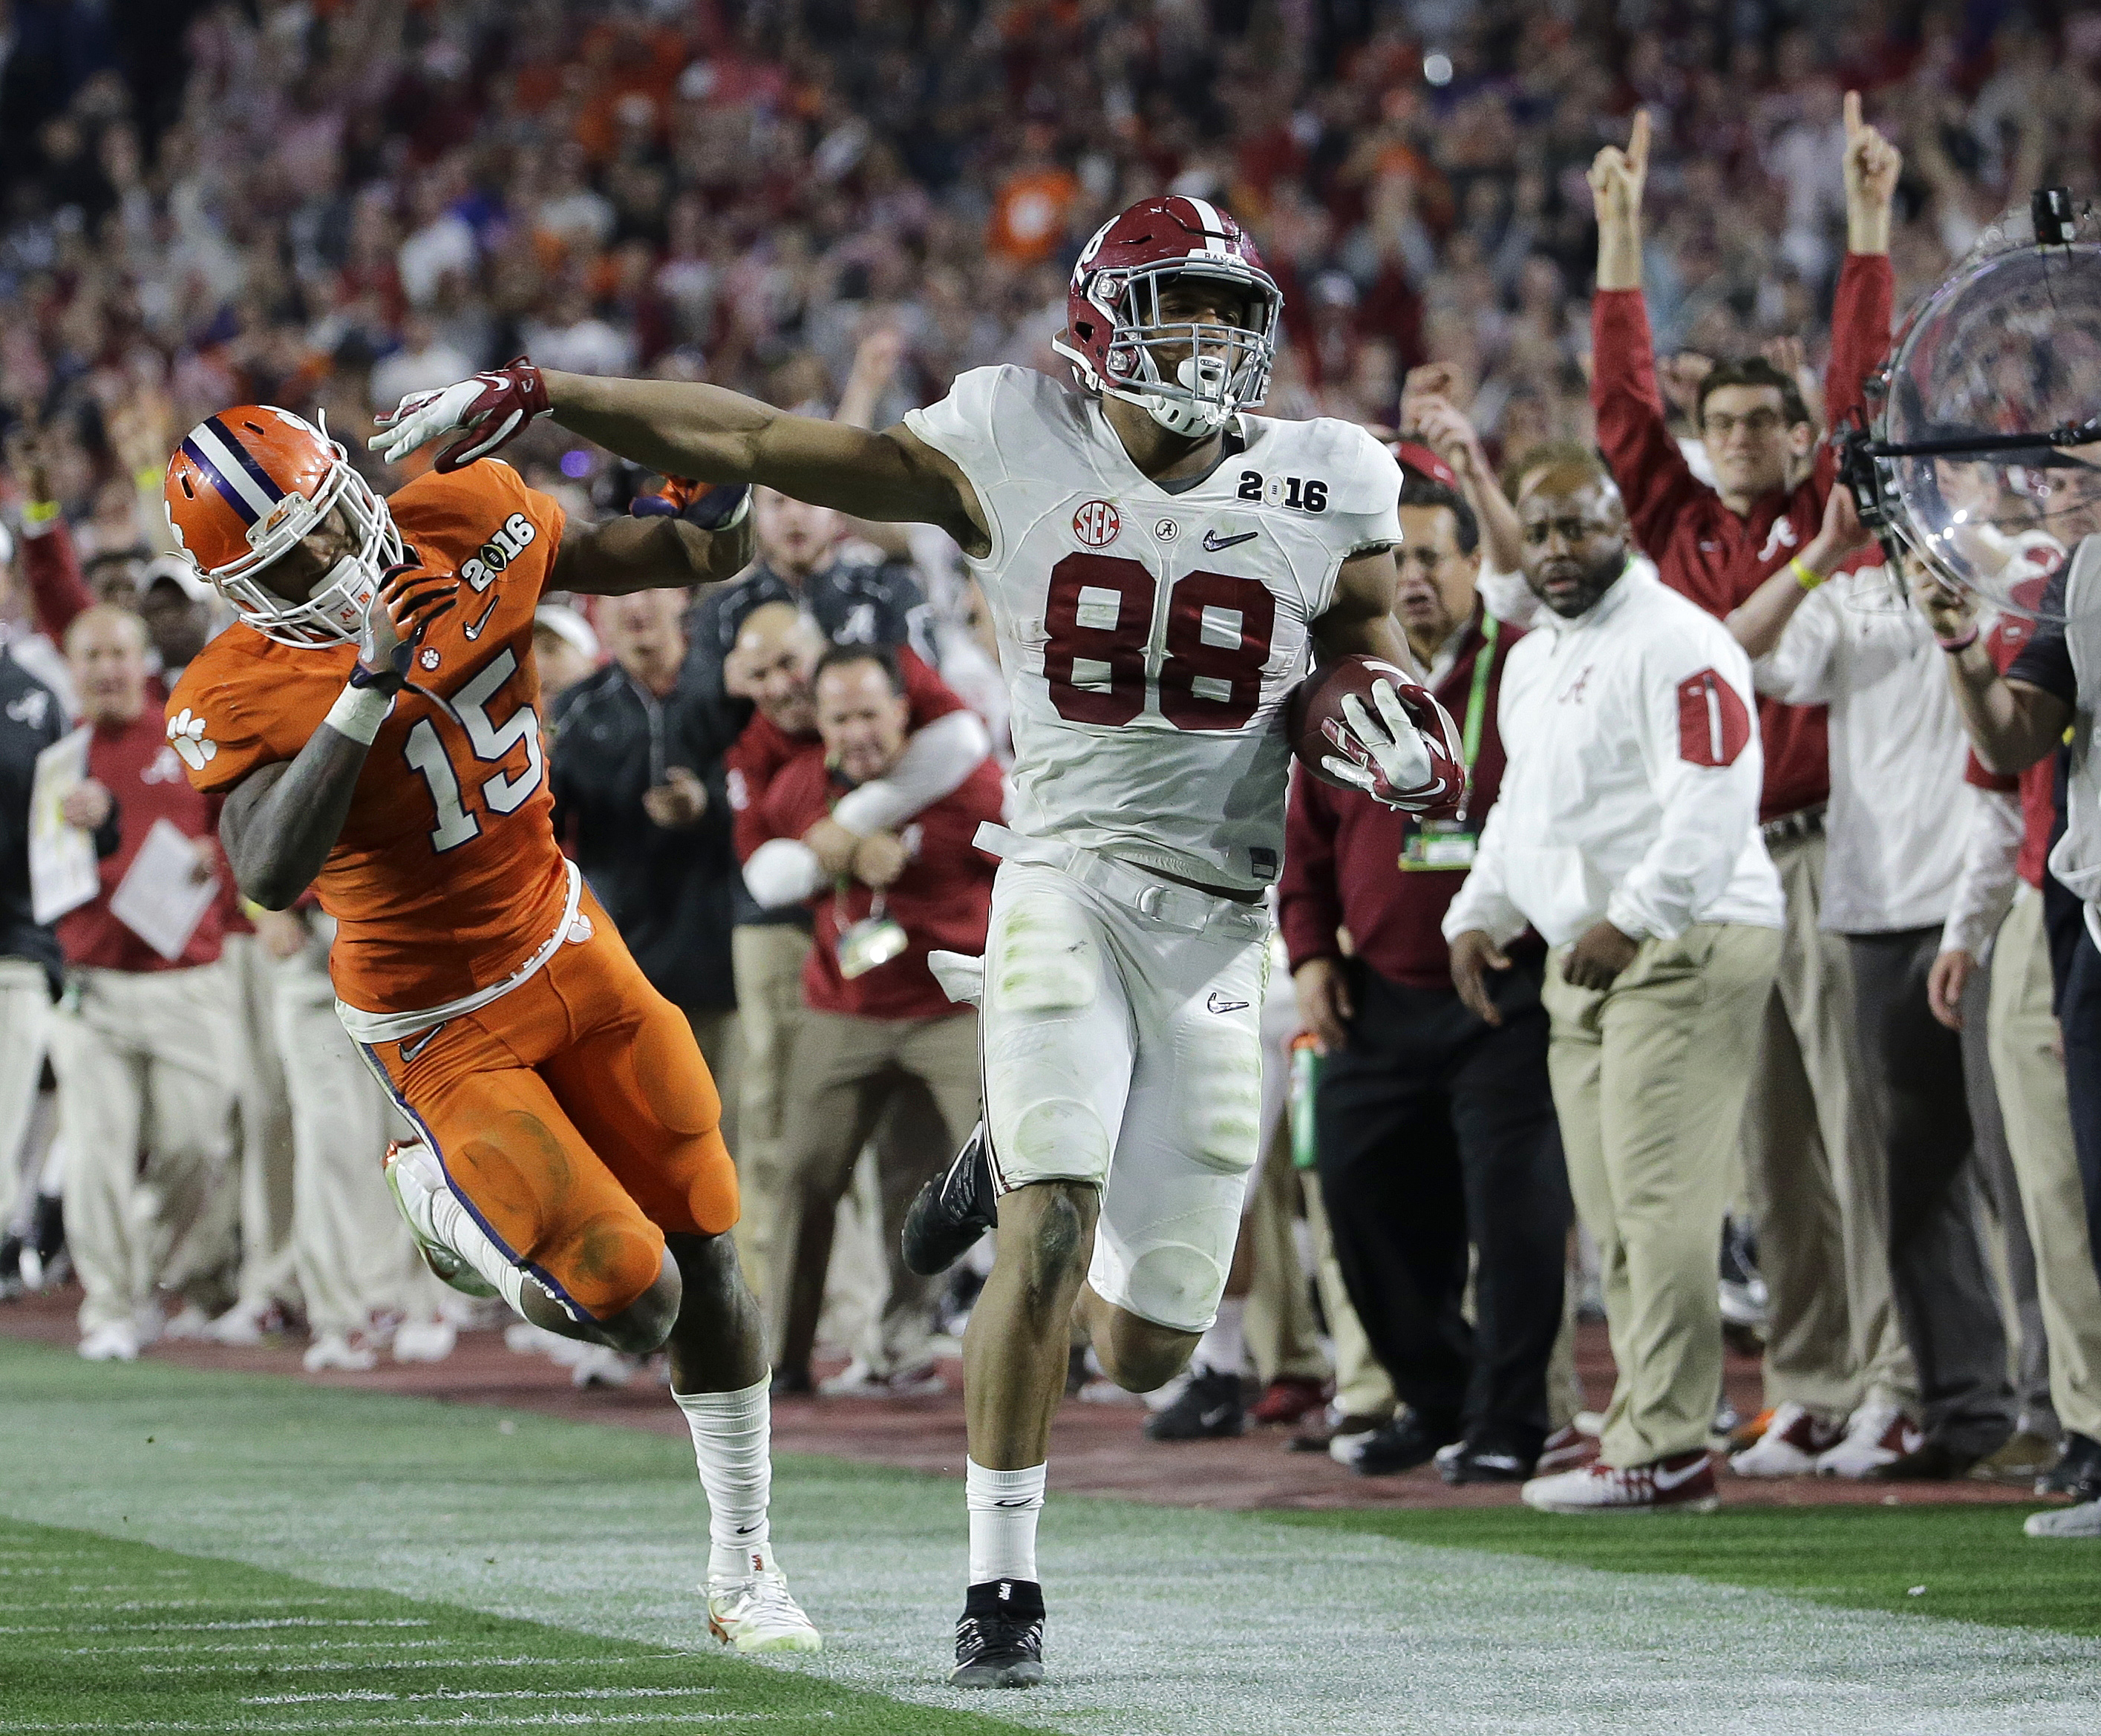 Clemson's T.J. Green (15) knocks Alabama's O.J. Howard out of bounds after a catch during the second half of the NCAA college football playoff championship game Monday, Jan. 11, 2016, in Glendale, Ariz. (AP Photo/David J. Phillip)